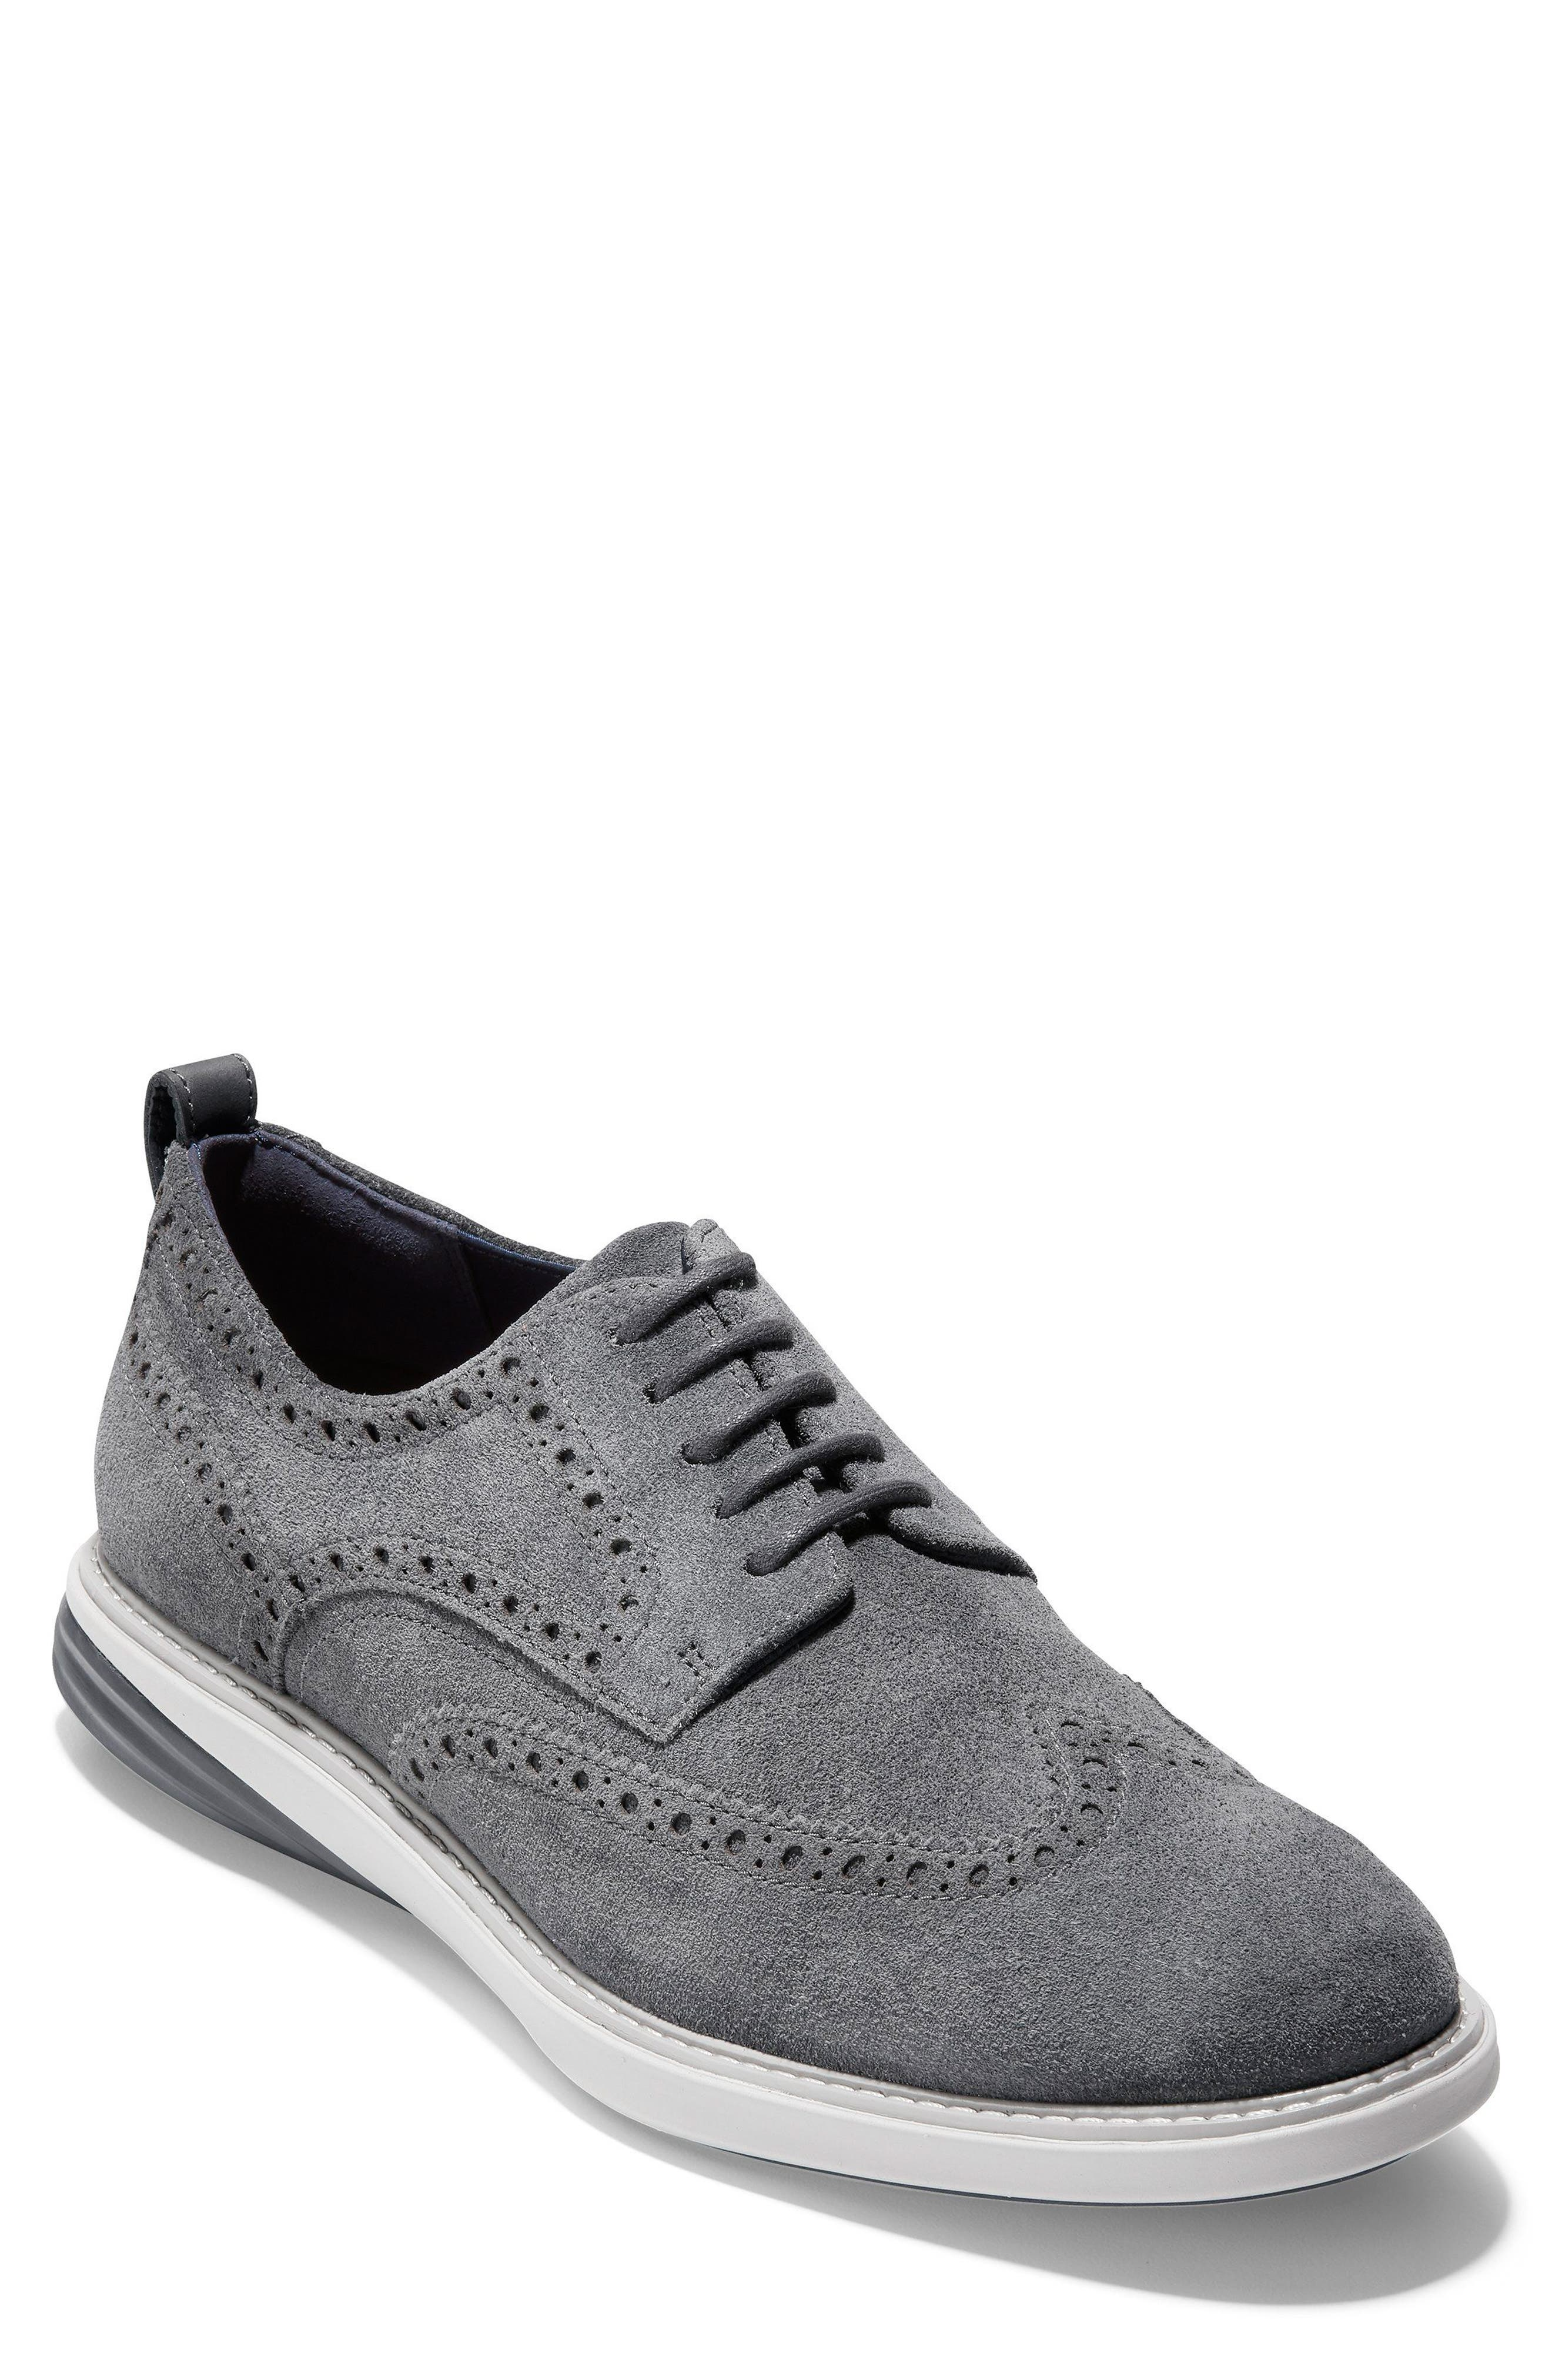 Grand Evolution Wingtip,                             Main thumbnail 1, color,